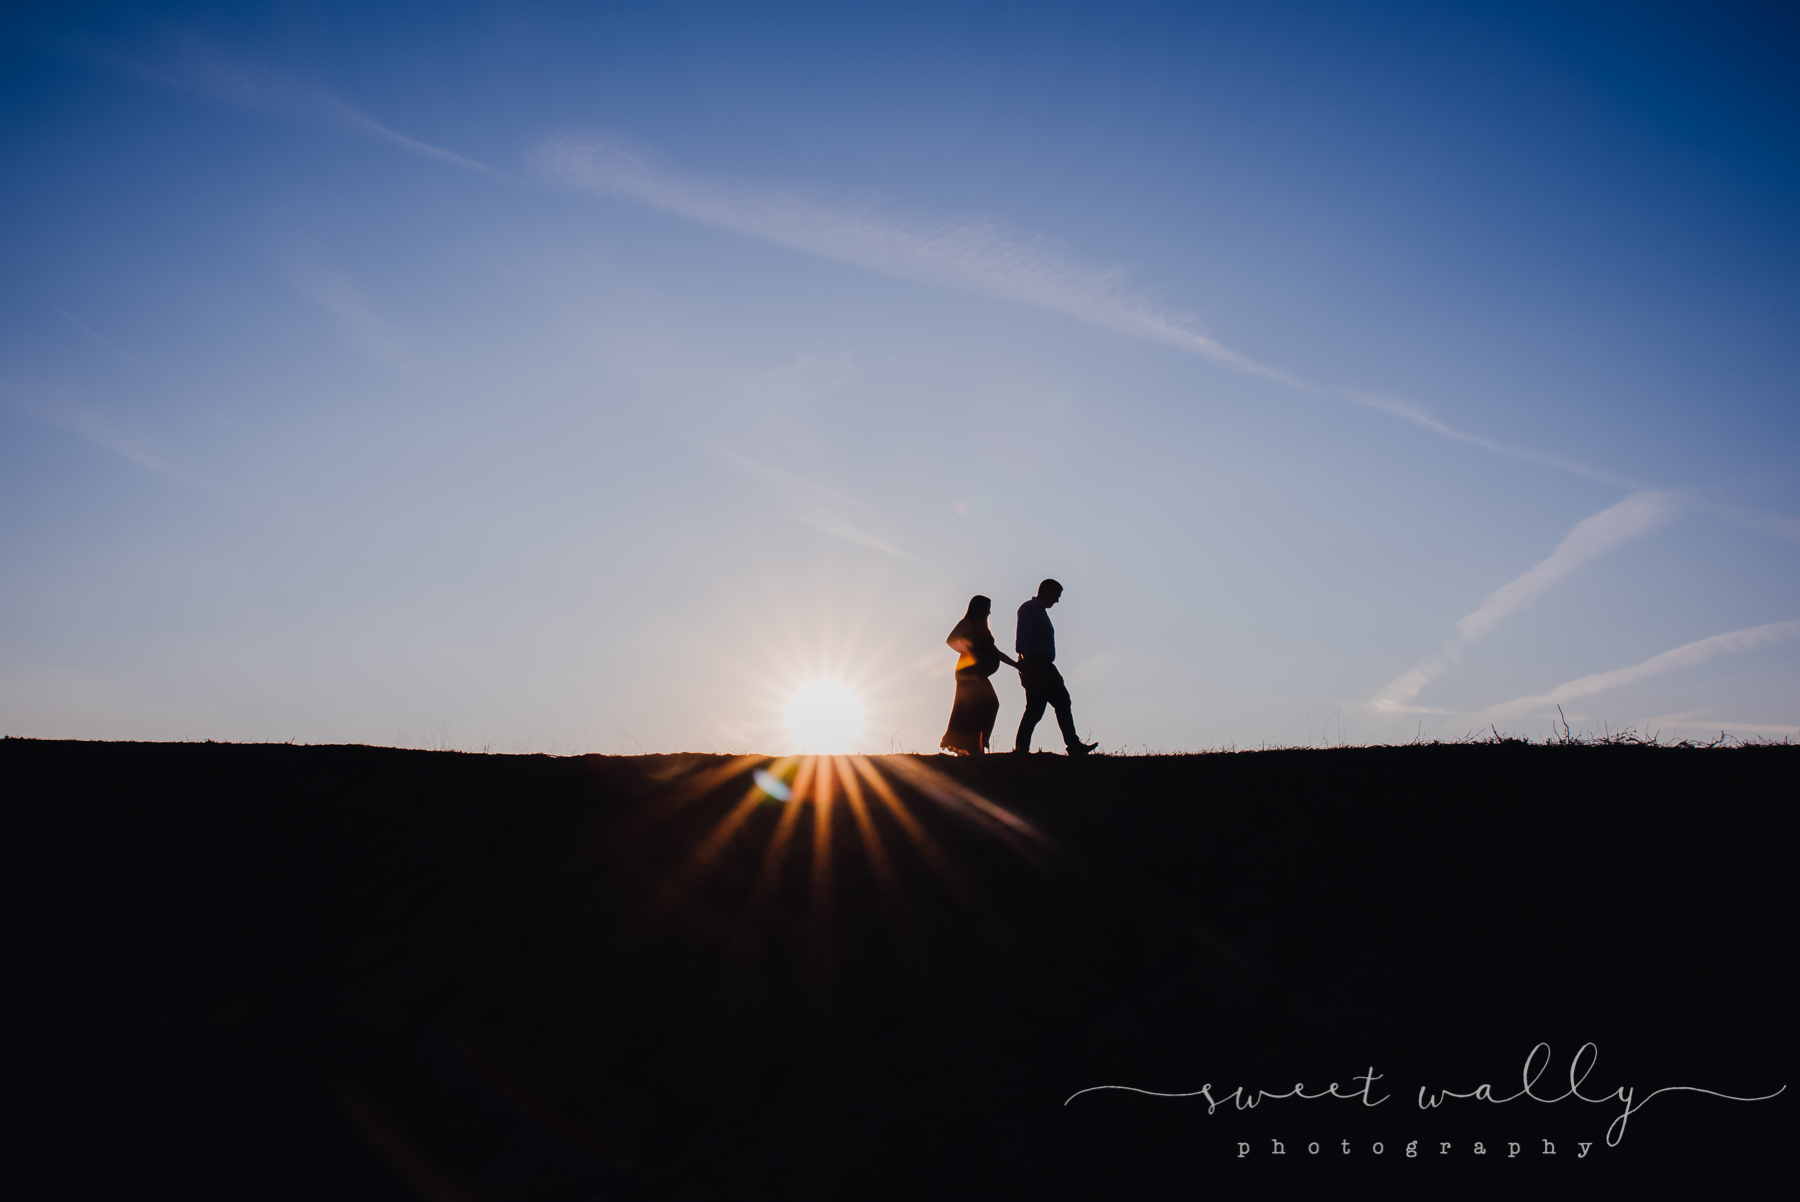 Sunshine and baby bump silhouette | Sweet Wally Photography | Nashville Maternity Photography